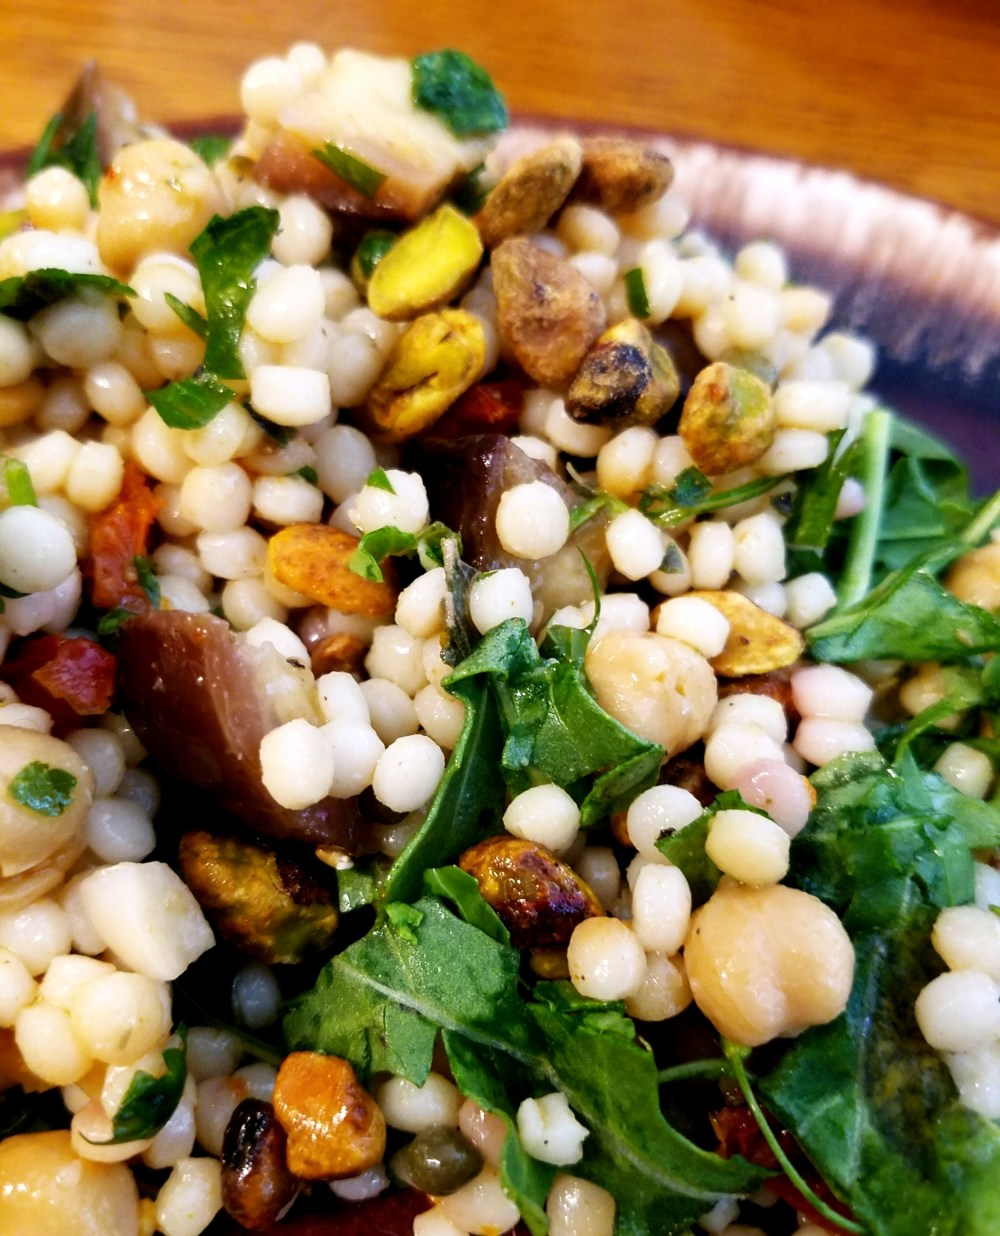 Served over a bed of arugula and topped with roasted pistachios